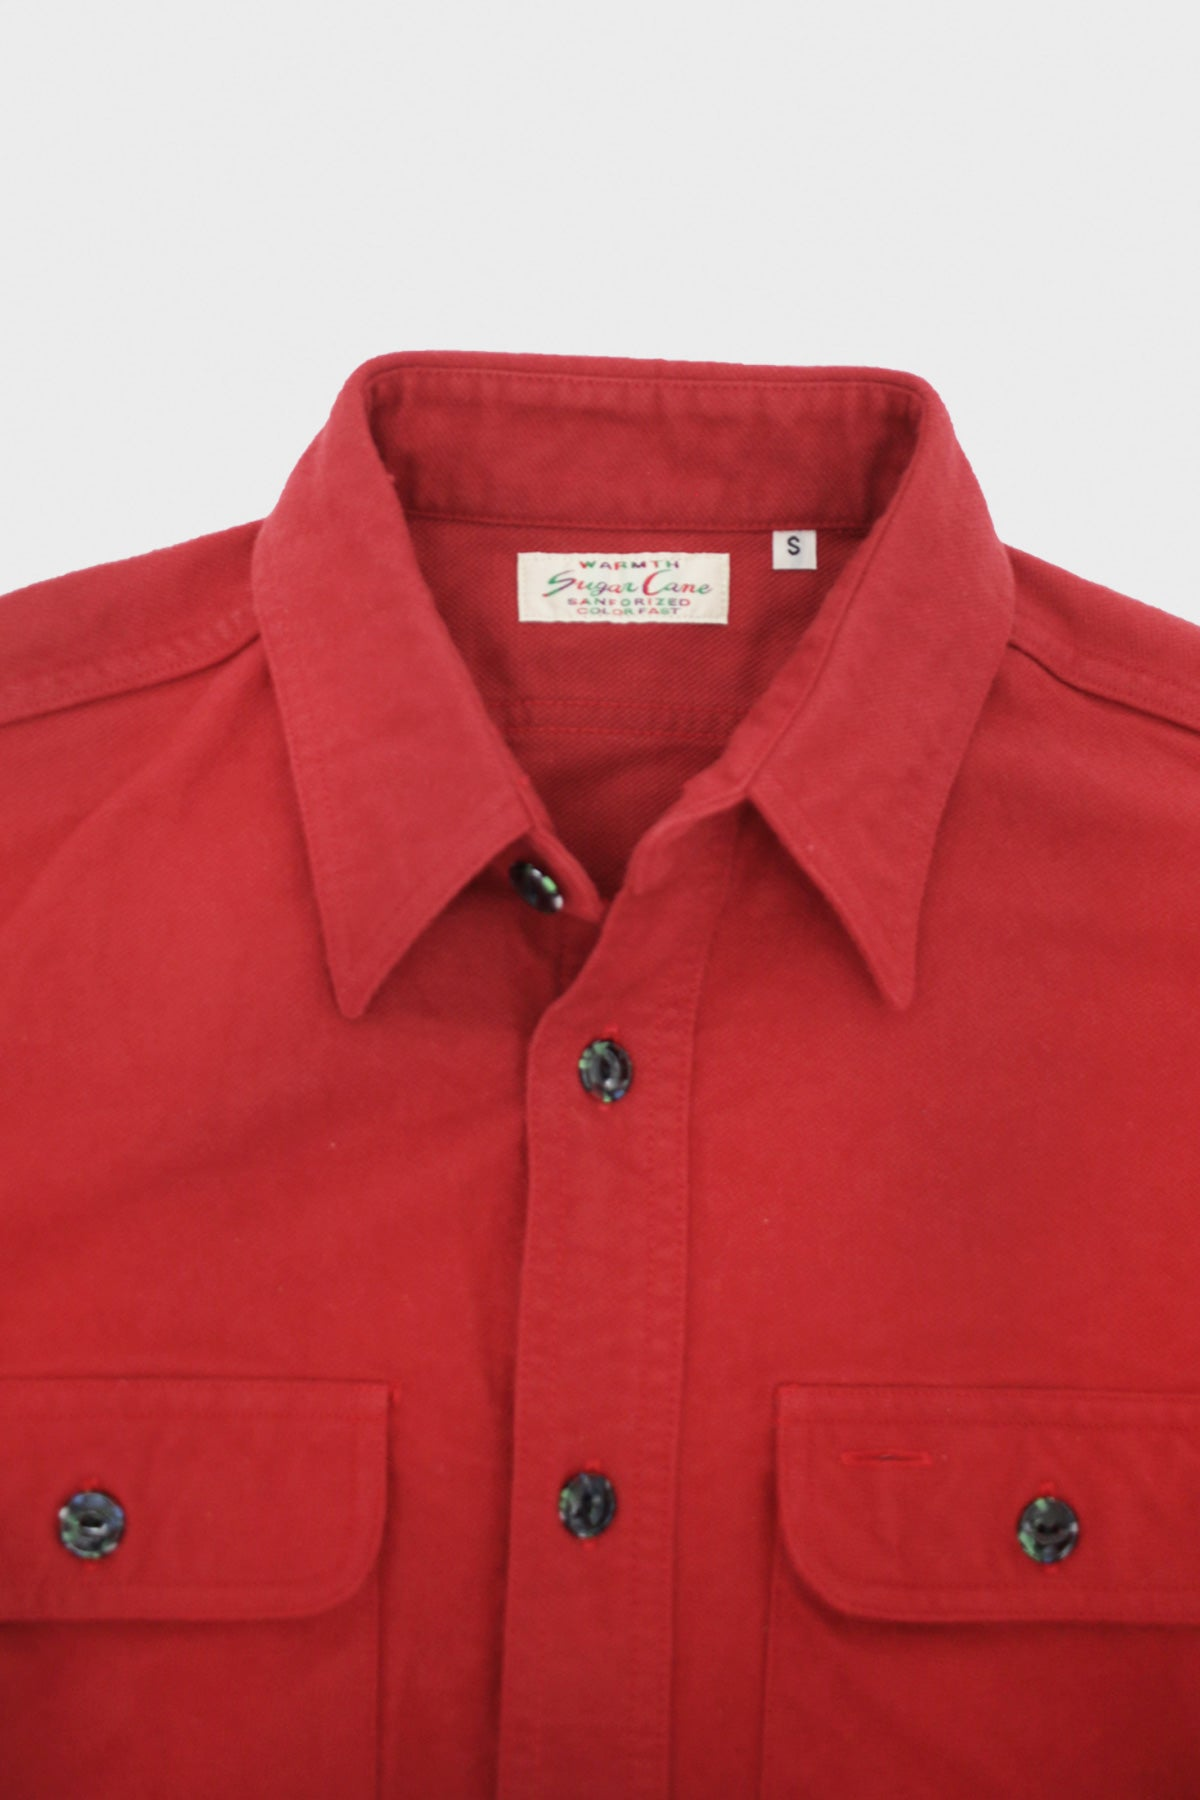 Sugar Cane - Heavy Twill Shirt - Red - Canoe Club